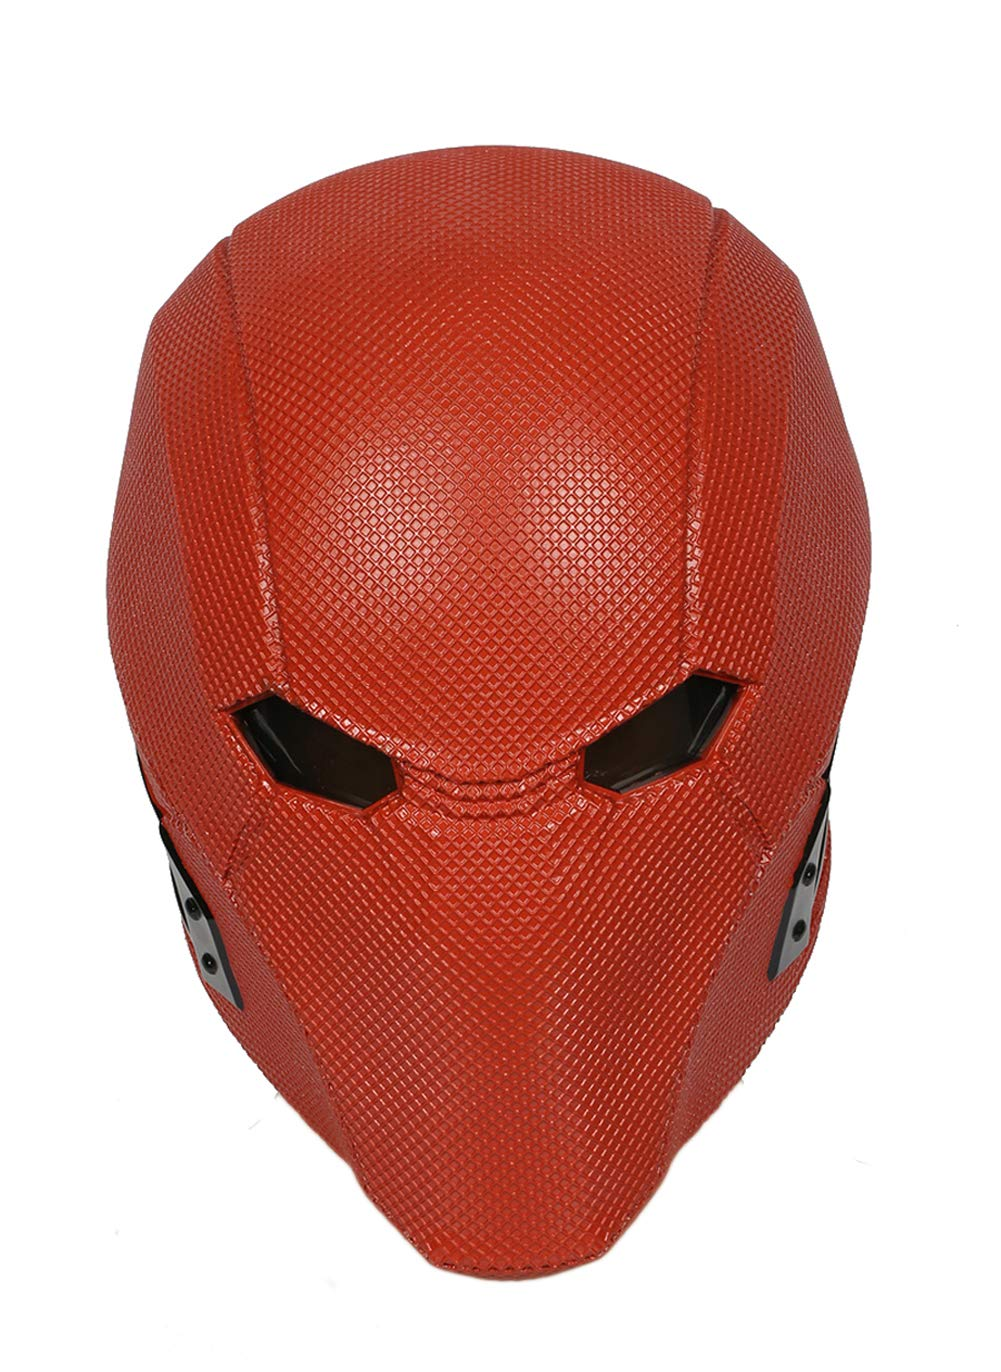 Xcoser Injustice 2 Red Hood Red Resin Helmet Game Cosplay Mask by xcoser®